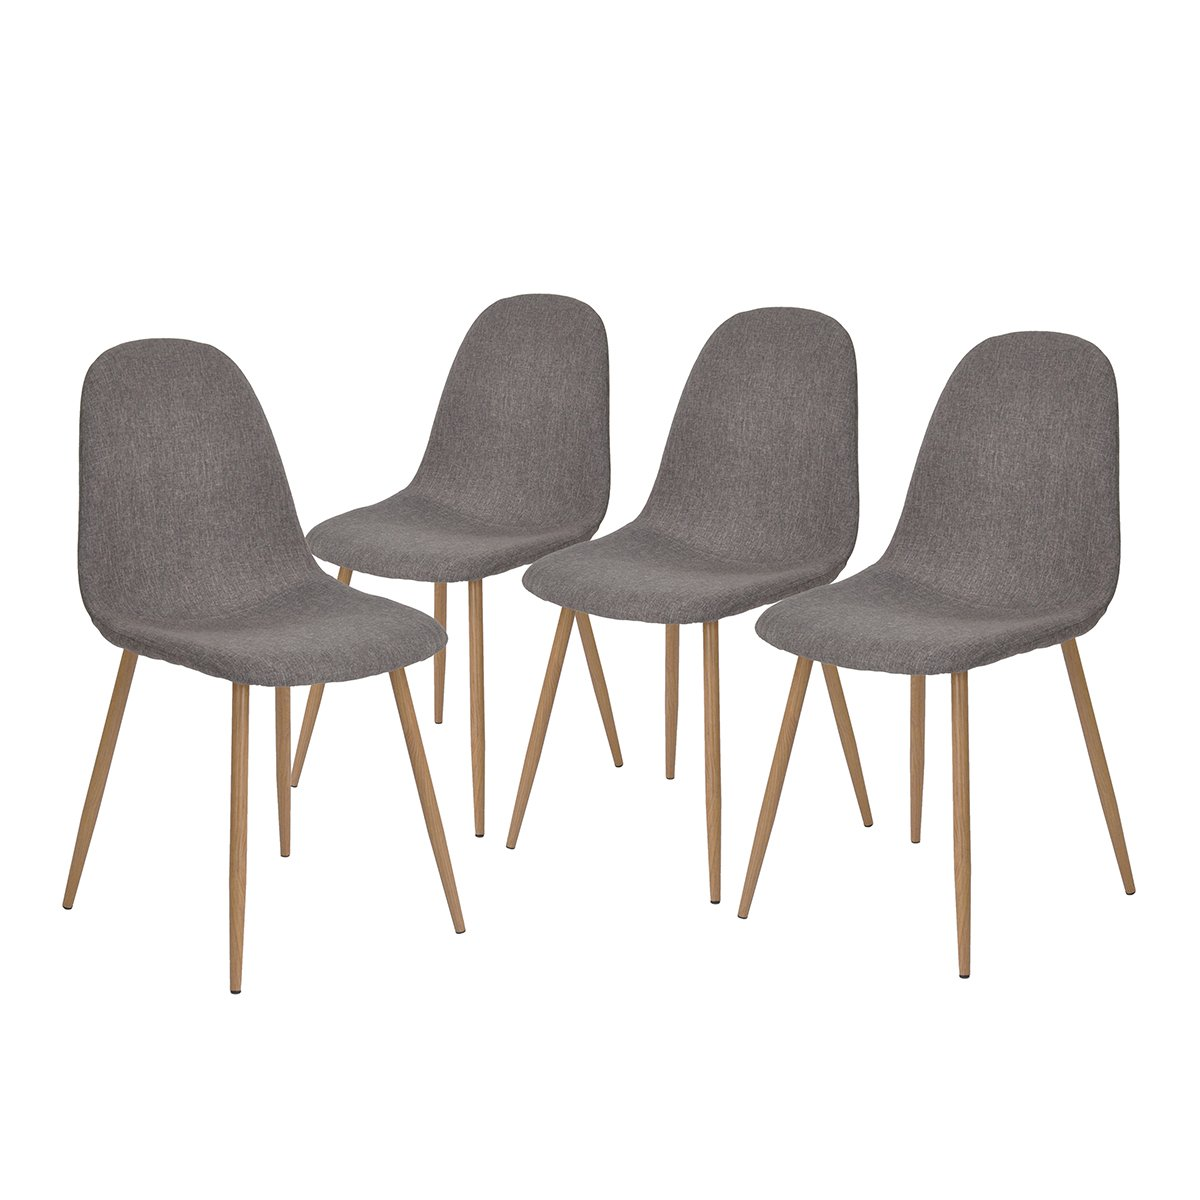 GreenForest Dining Side Chairs Strong Metal Legs Fabric Cushion Seat Back Dining Room Chairs Set of 4,Gray